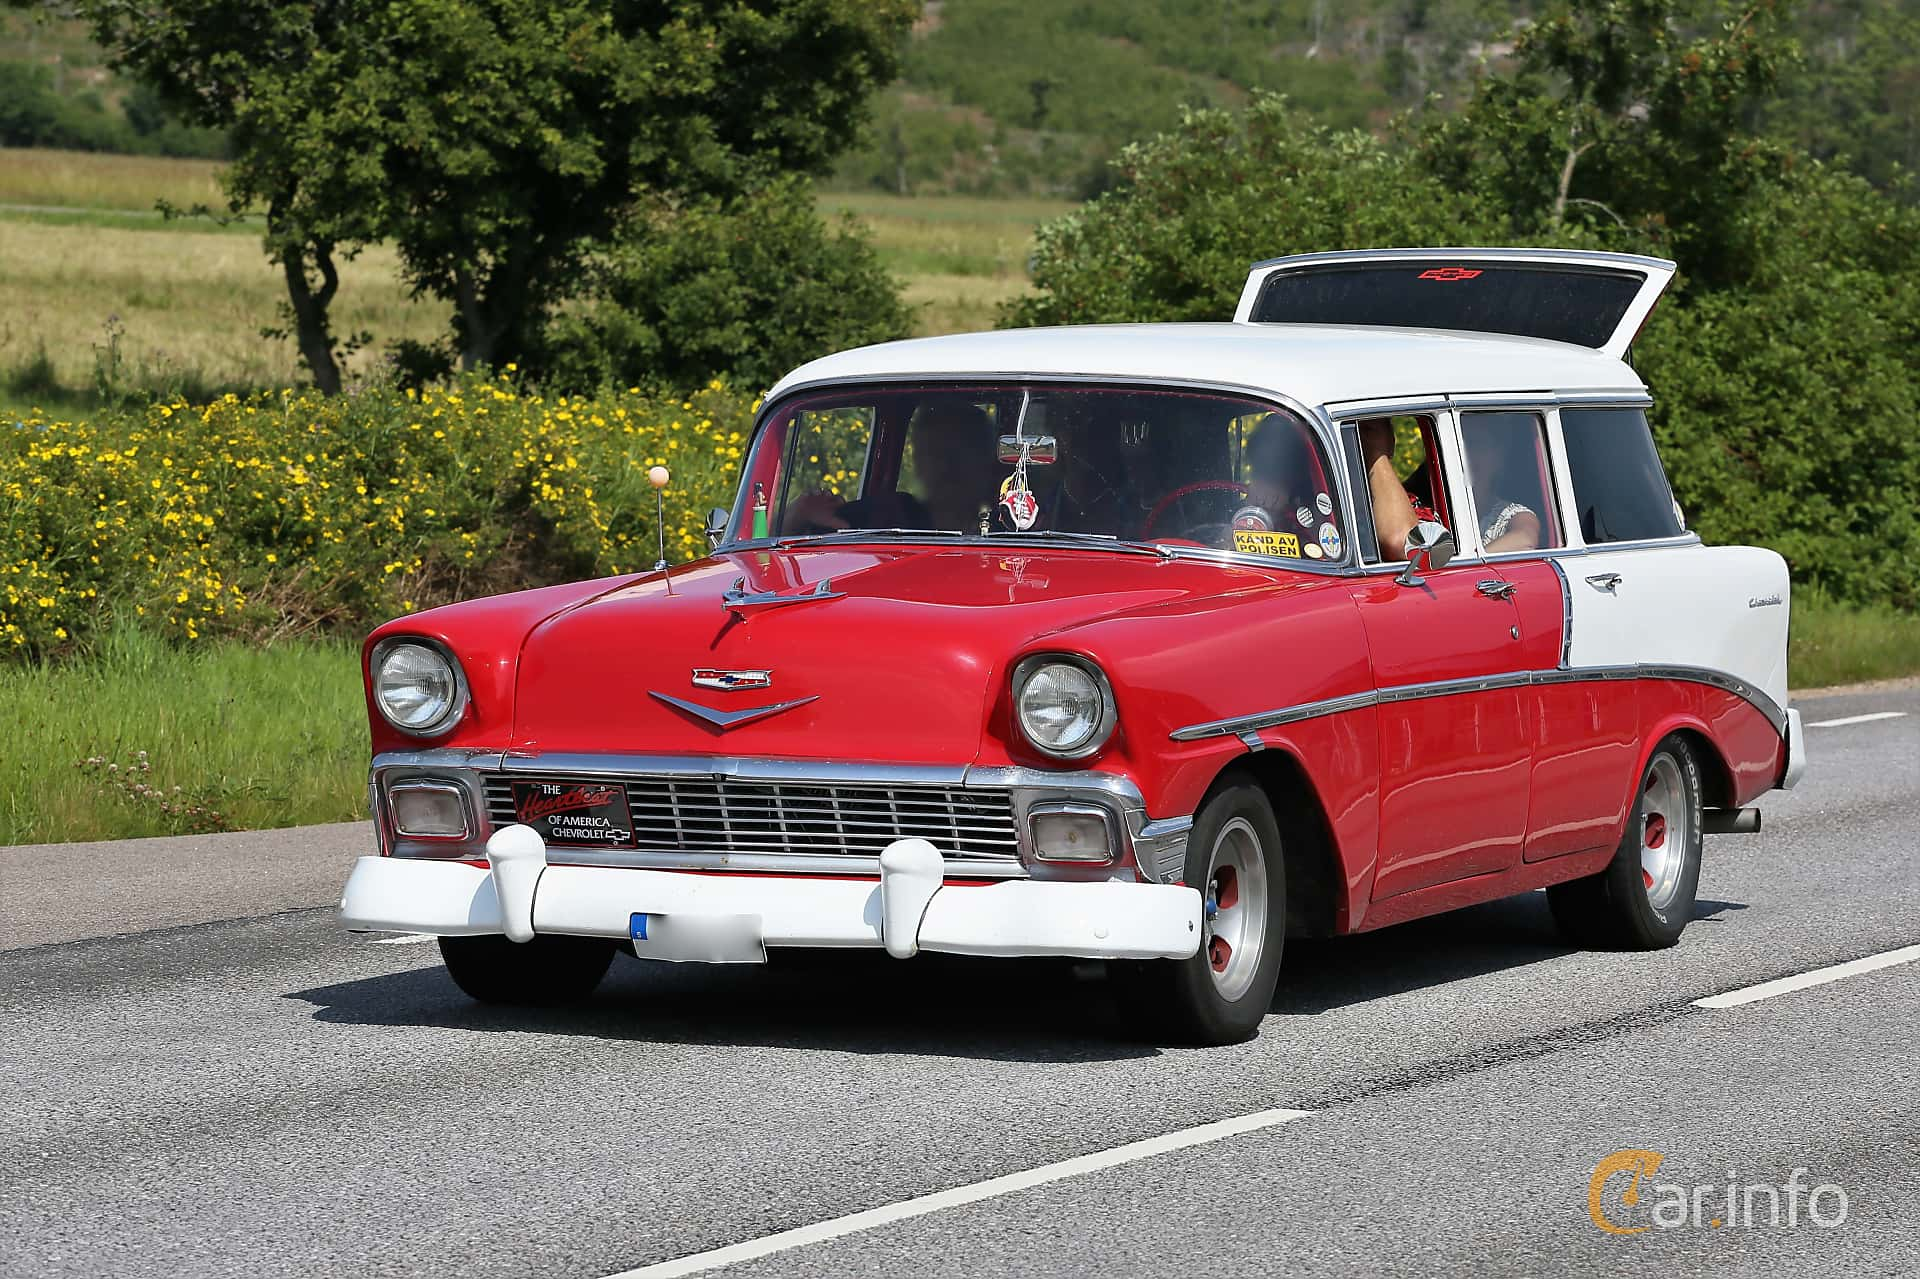 Chevrolet Bel Air Beauville 3.9 Manual, 142hp, 1956